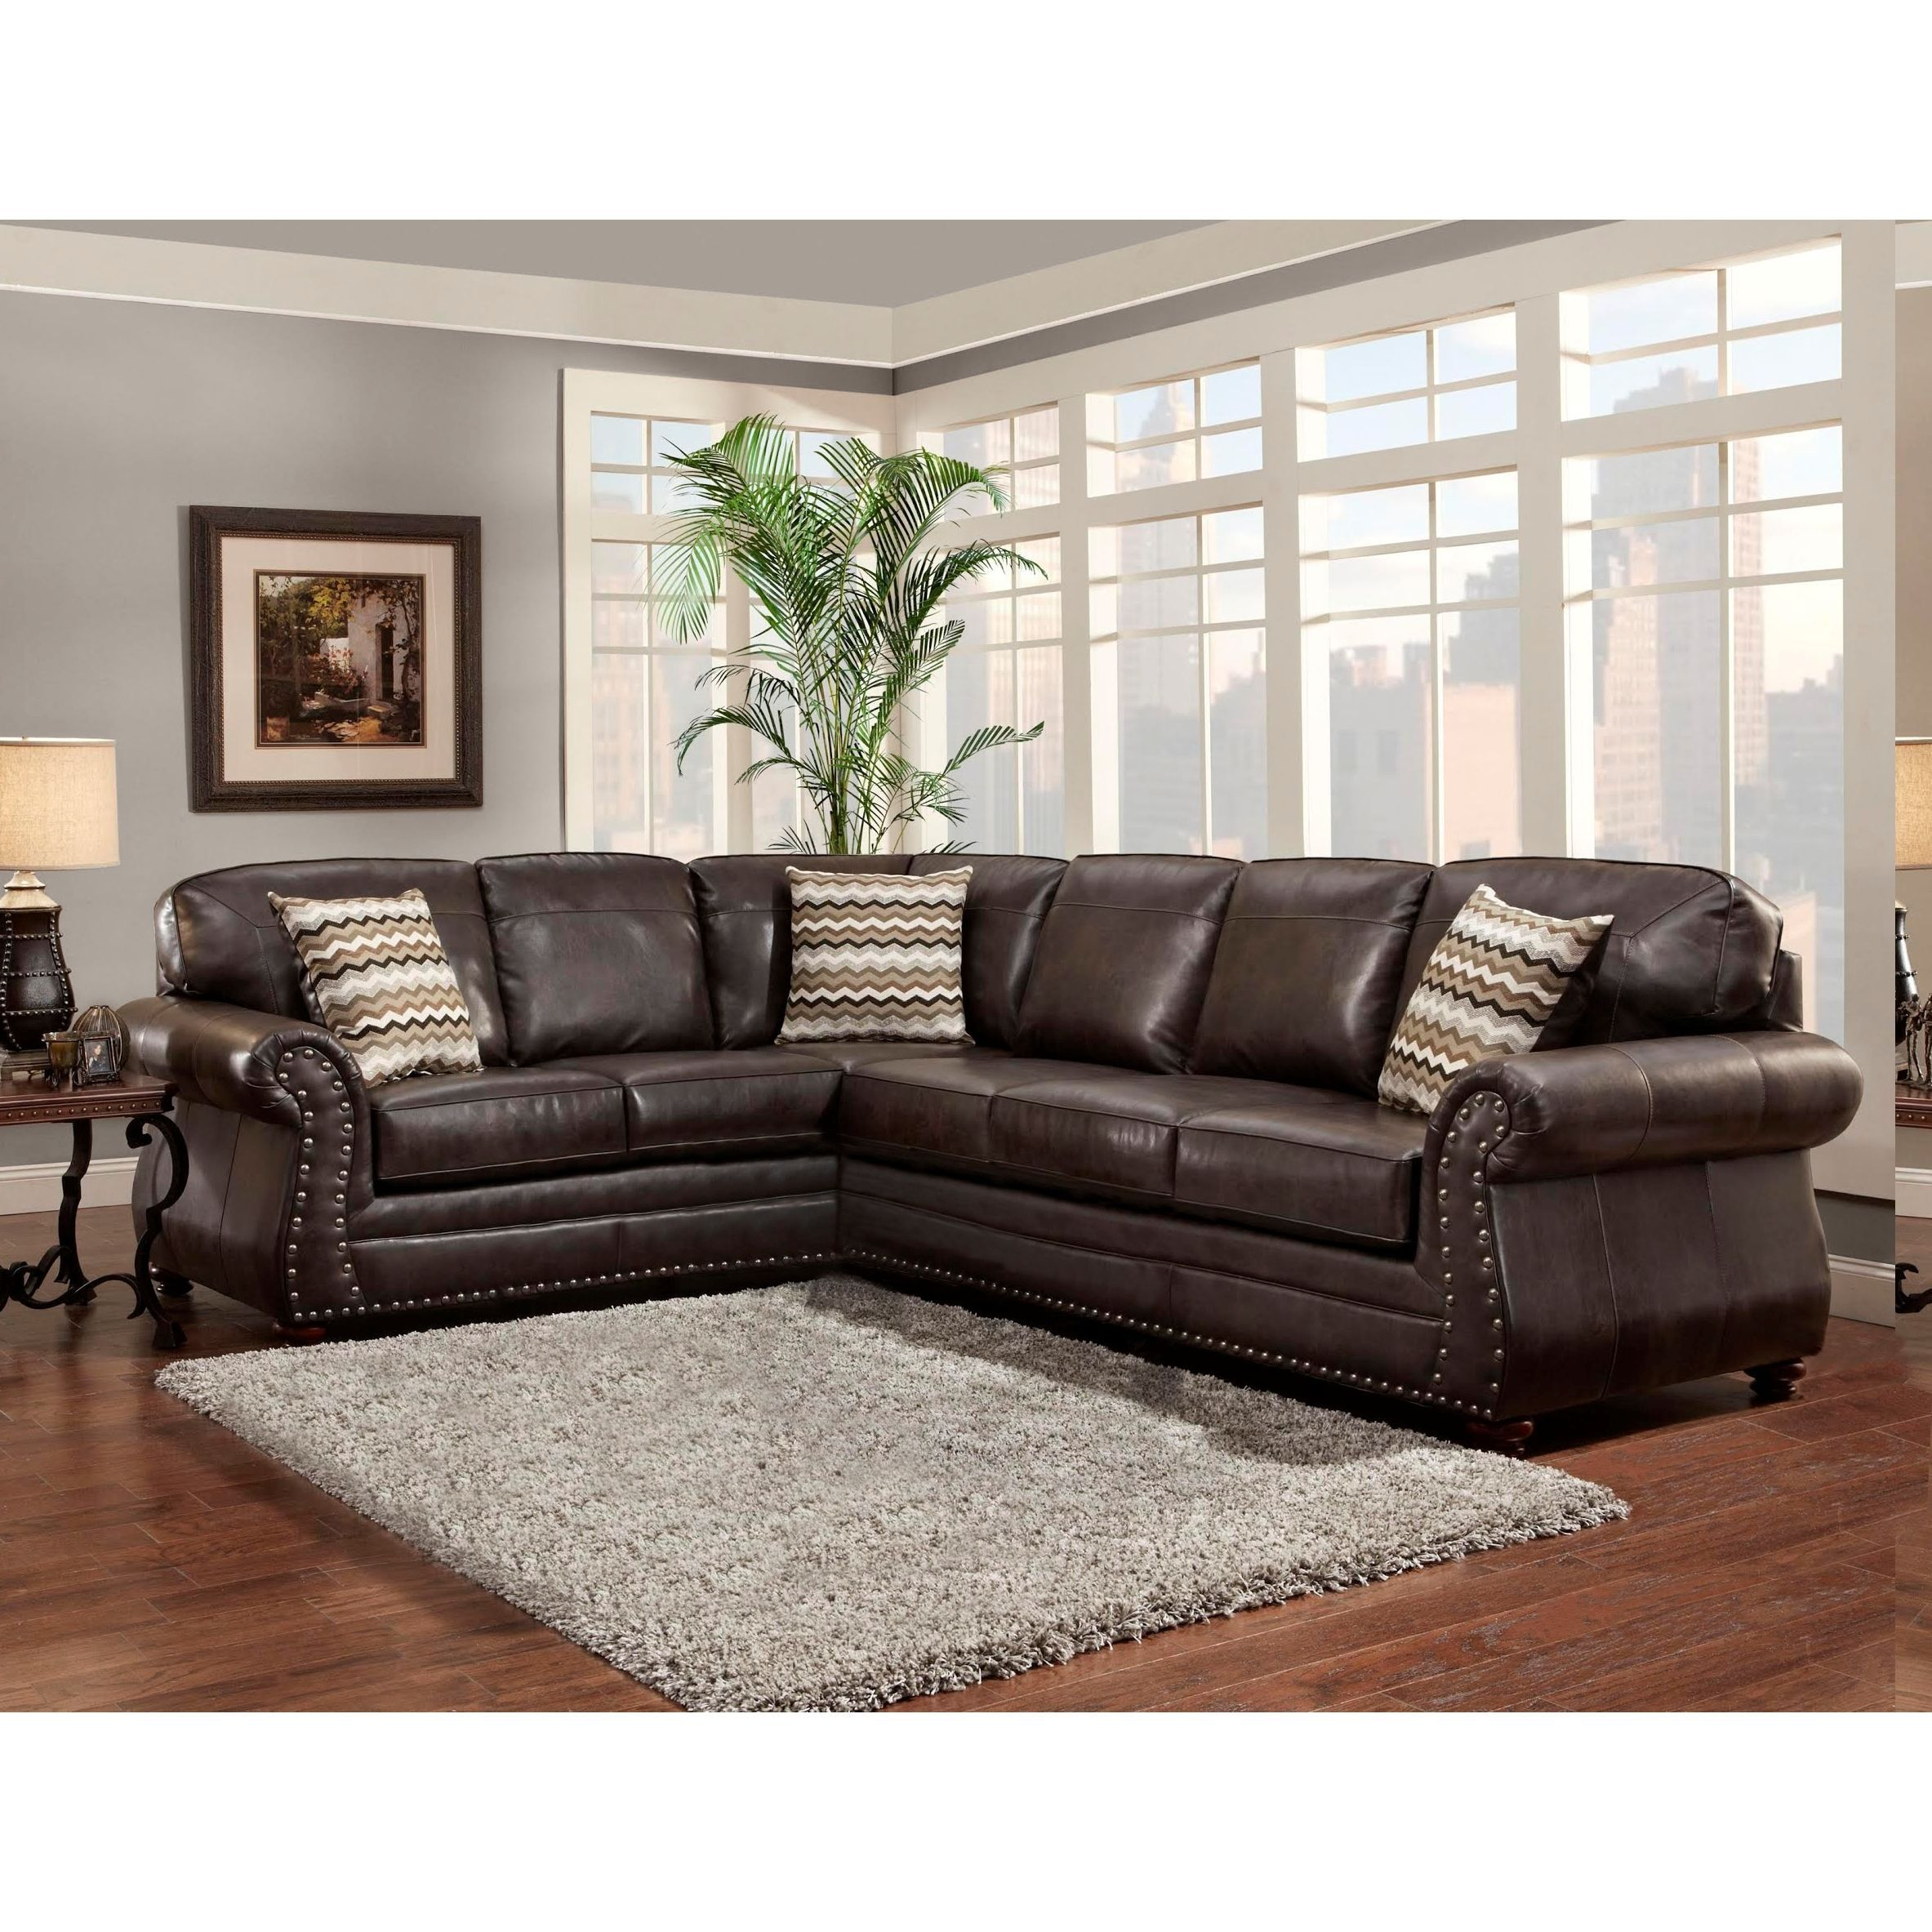 Beige Brown Grey Taupe Leather 1500 Sectional Sofas